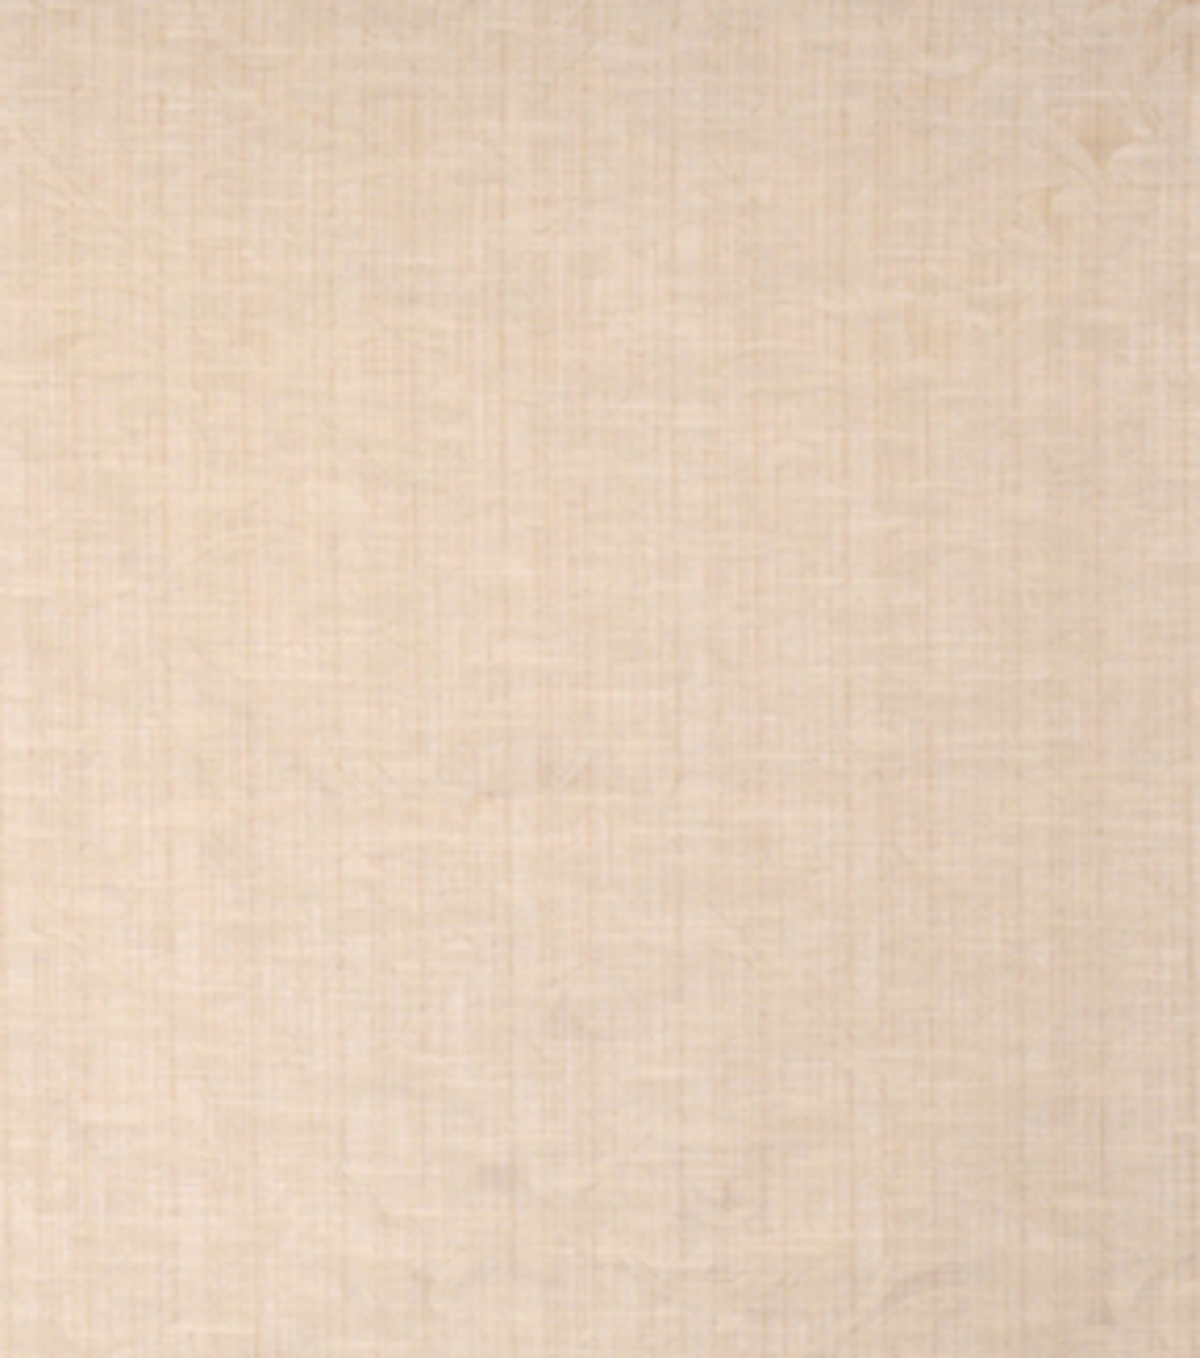 Home Decor 8\u0022x8\u0022 Fabric Swatch-Upholstery Fabric Eaton Square Fortress Linen